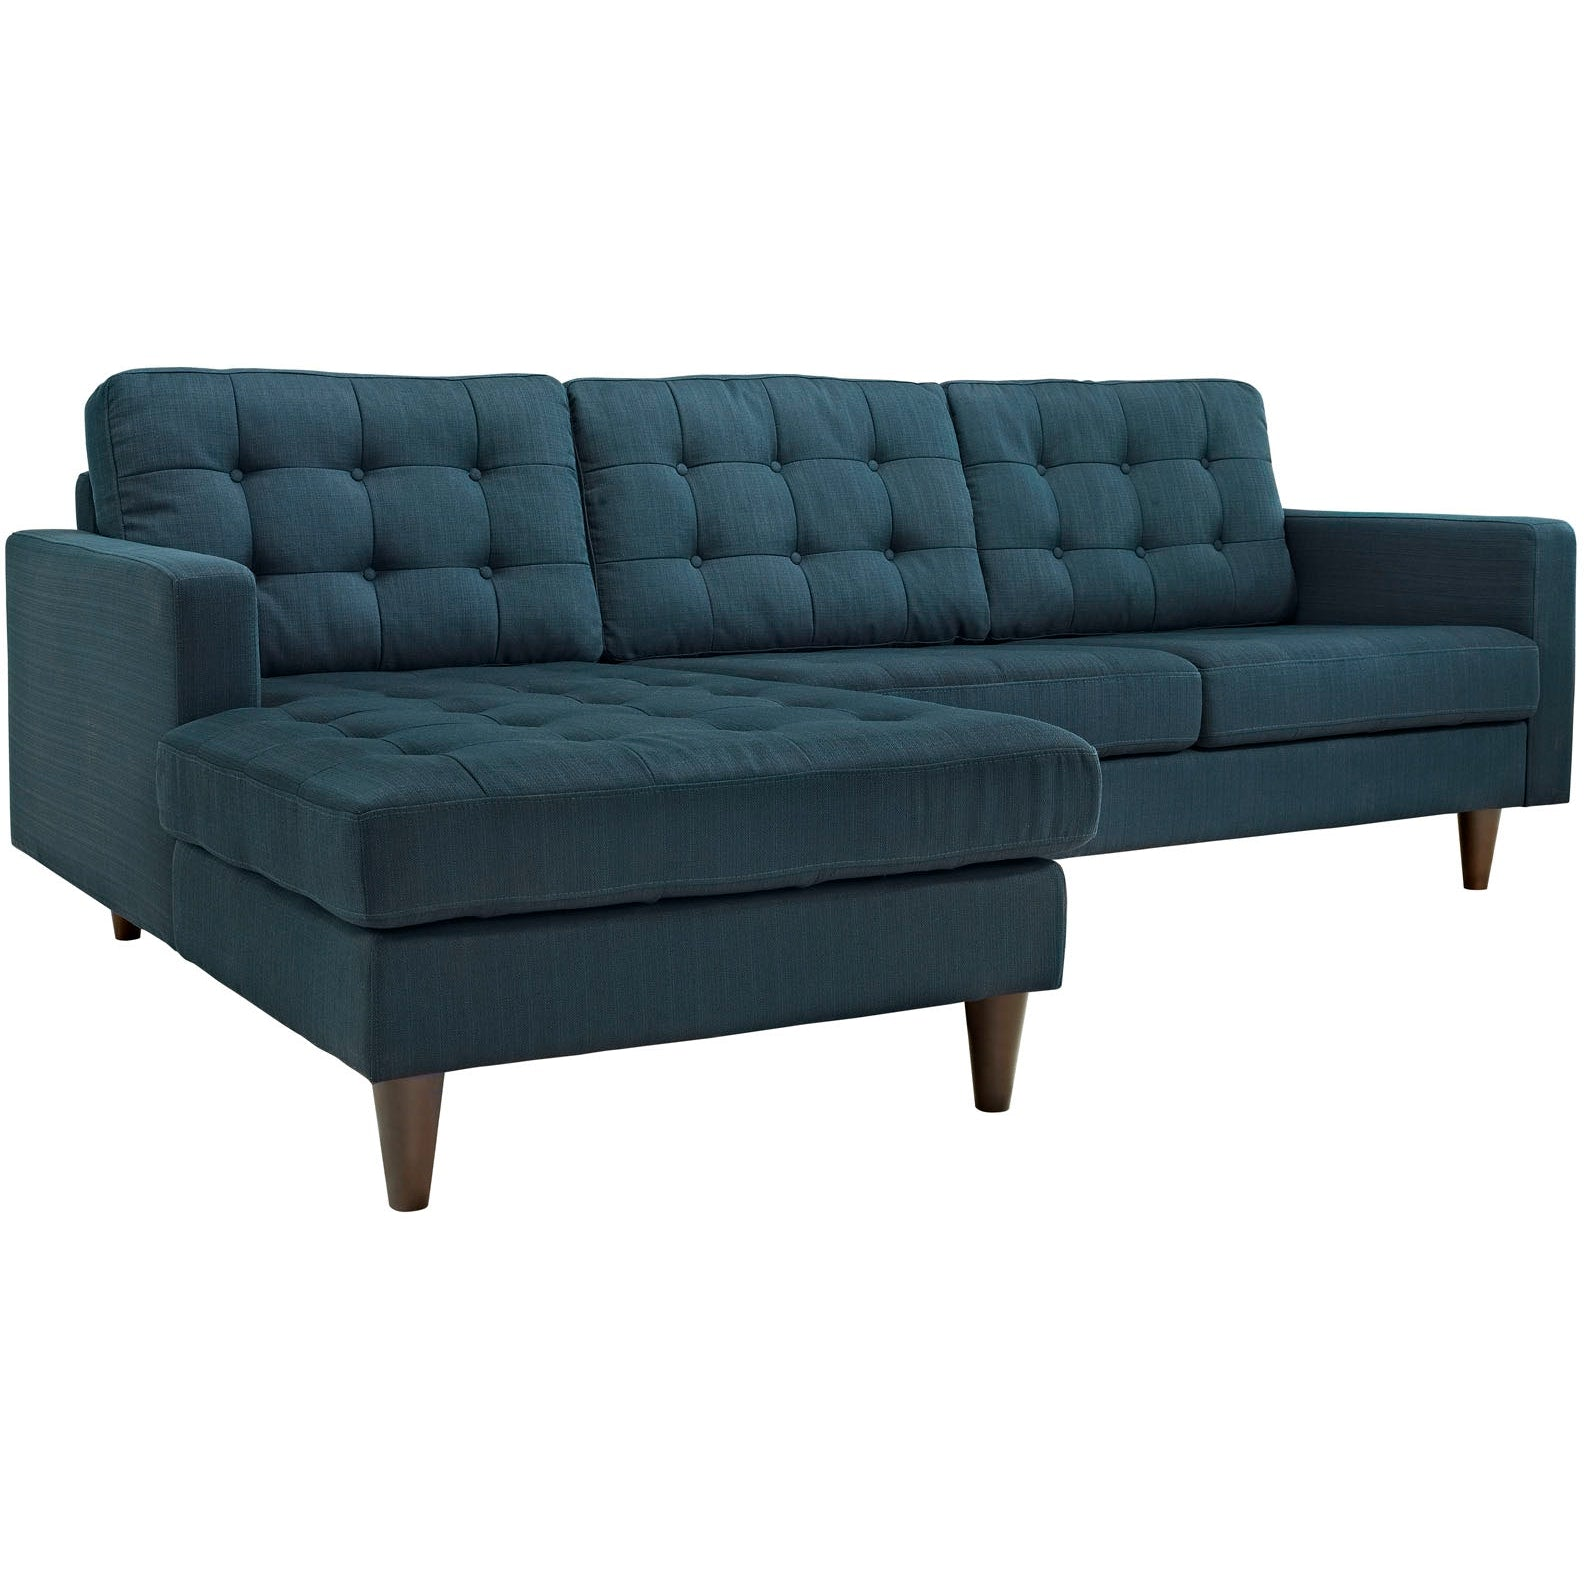 Empress Left-Facing Upholstered Fabric Sectional Sofa - Azure